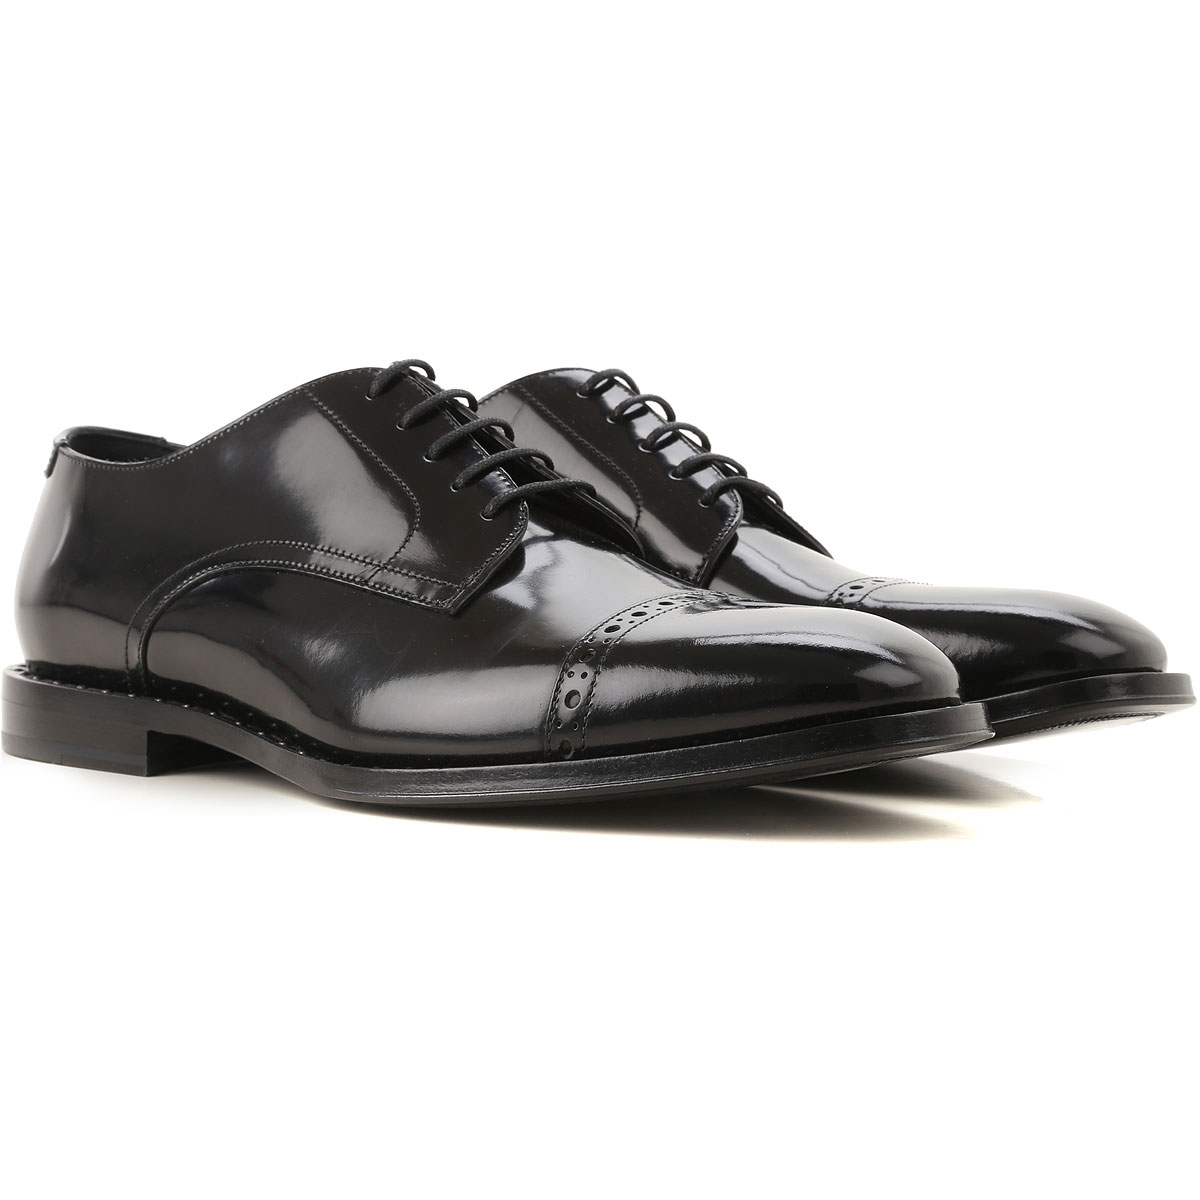 Jimmy Choo Lace Up Shoes for Men Oxfords Derbies and Brogues On Sale in Outlet USA - GOOFASH